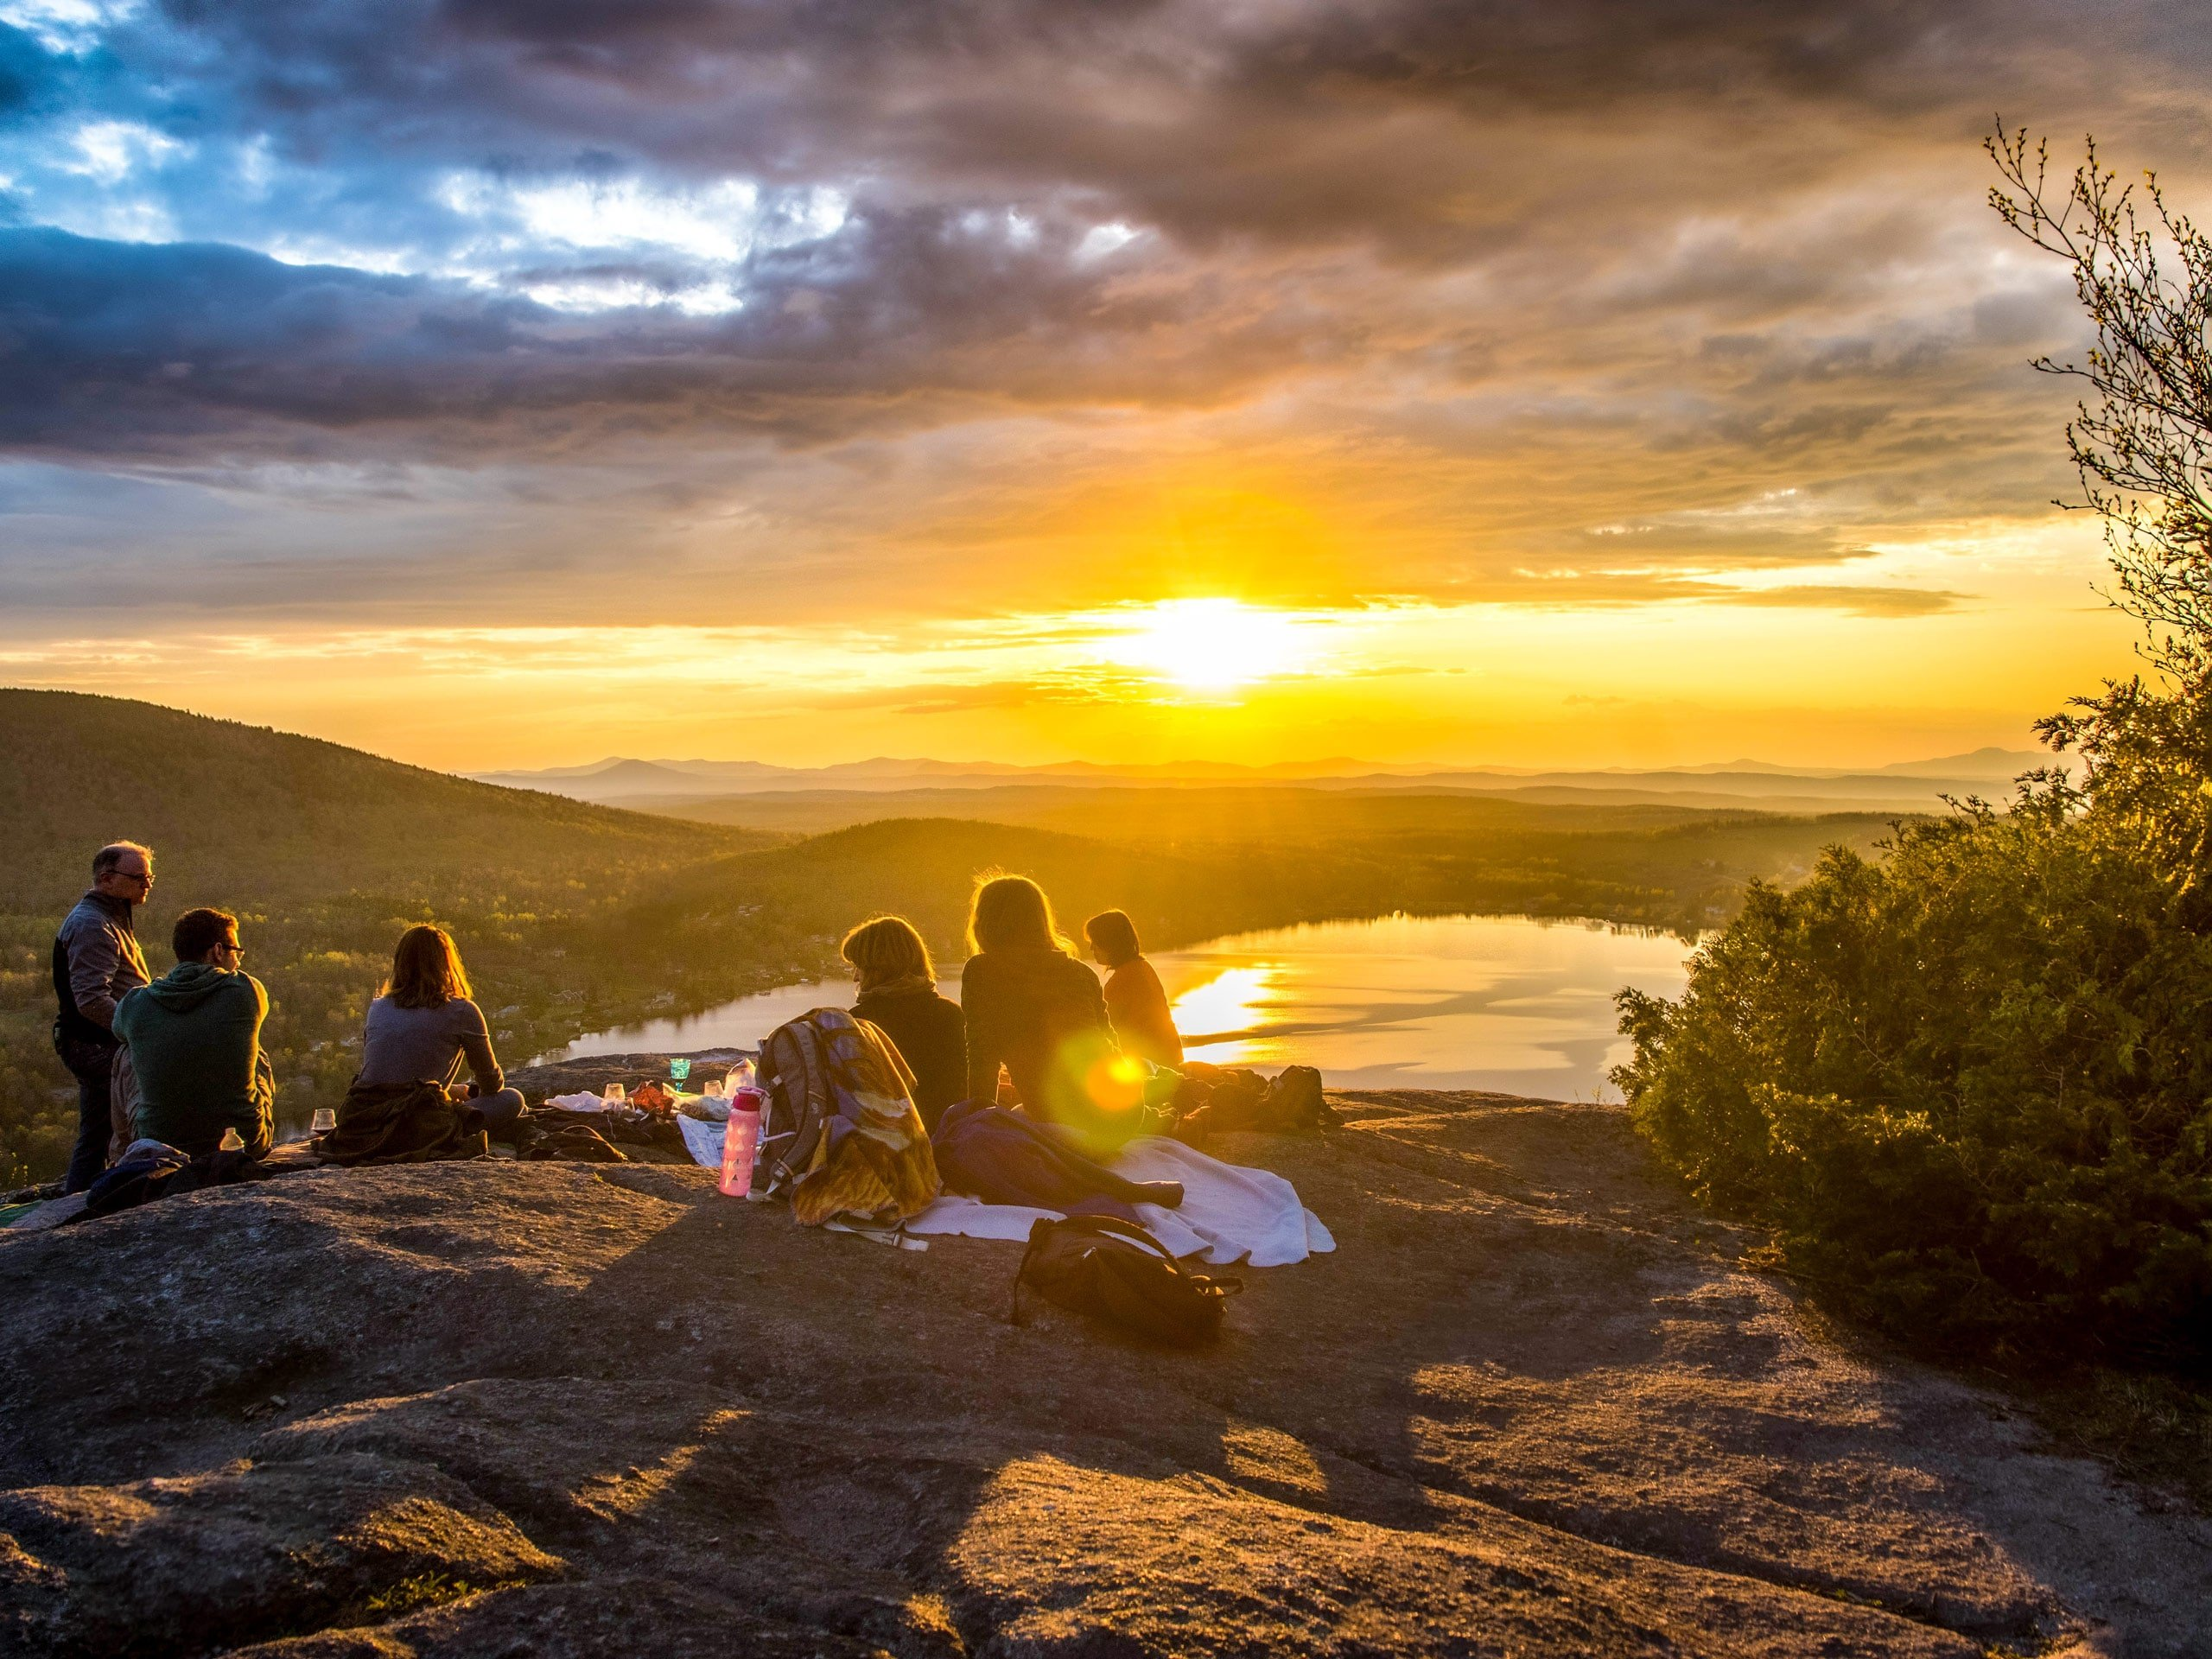 Friends hiking resting on rock lookout watching the sunset